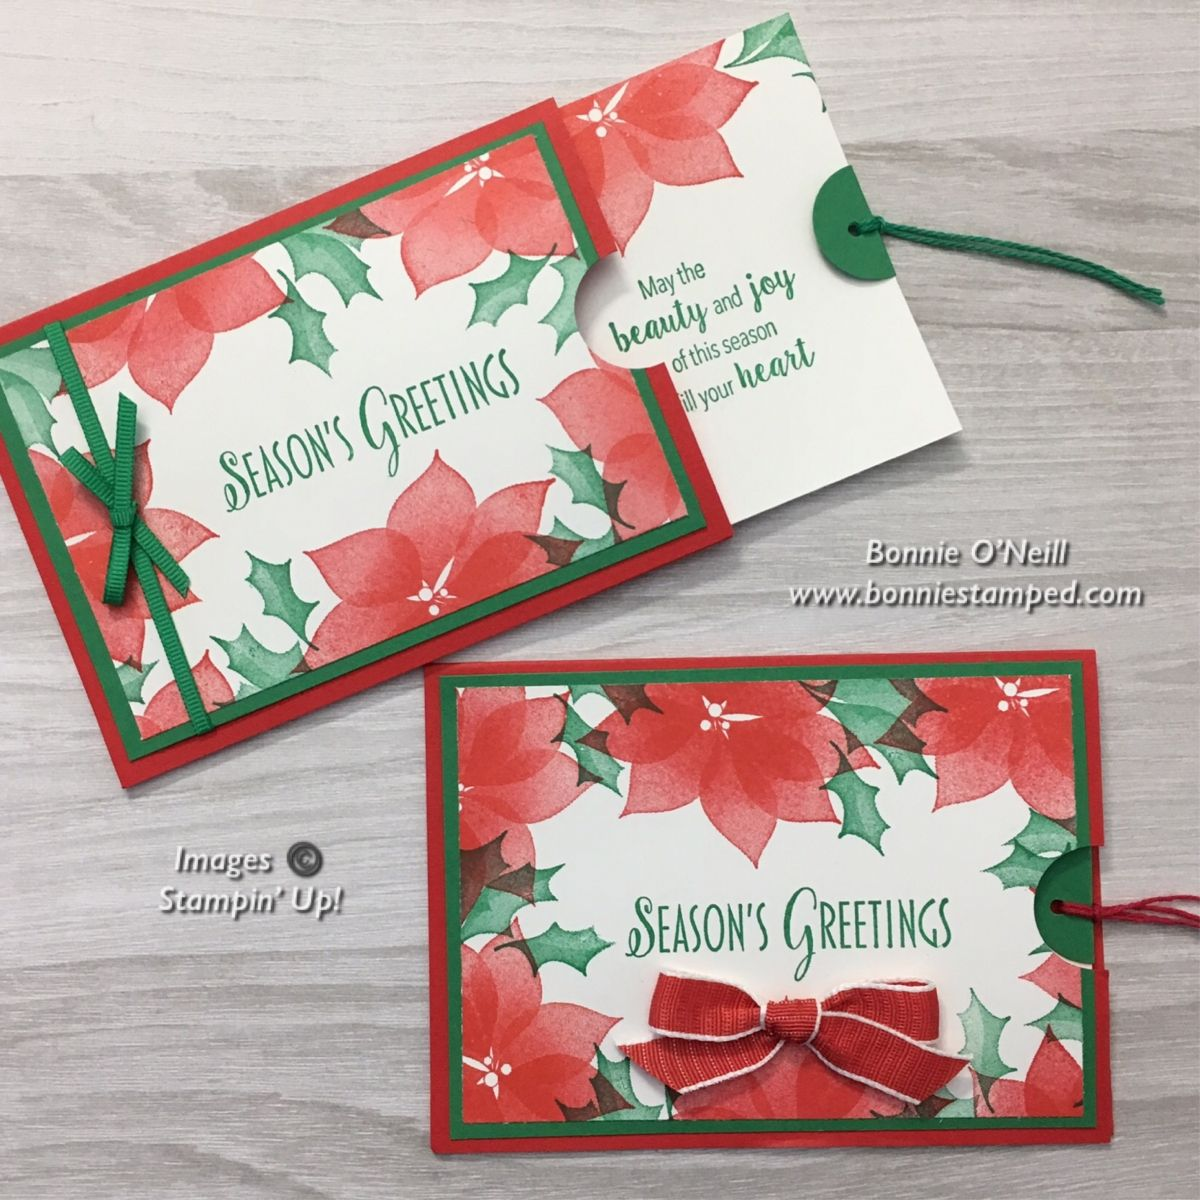 Pocket Card For A Gift Card Christmas Gift Card Gift Cards Money Christmas Gift Card Holders